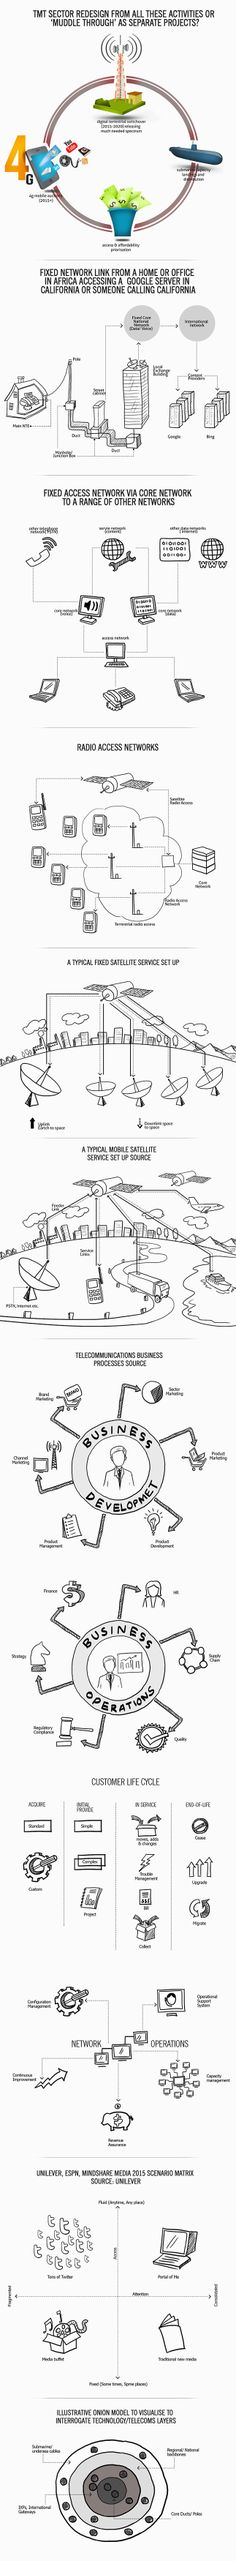 15 Best Computer and Networks — Telecommunication Network Diagrams